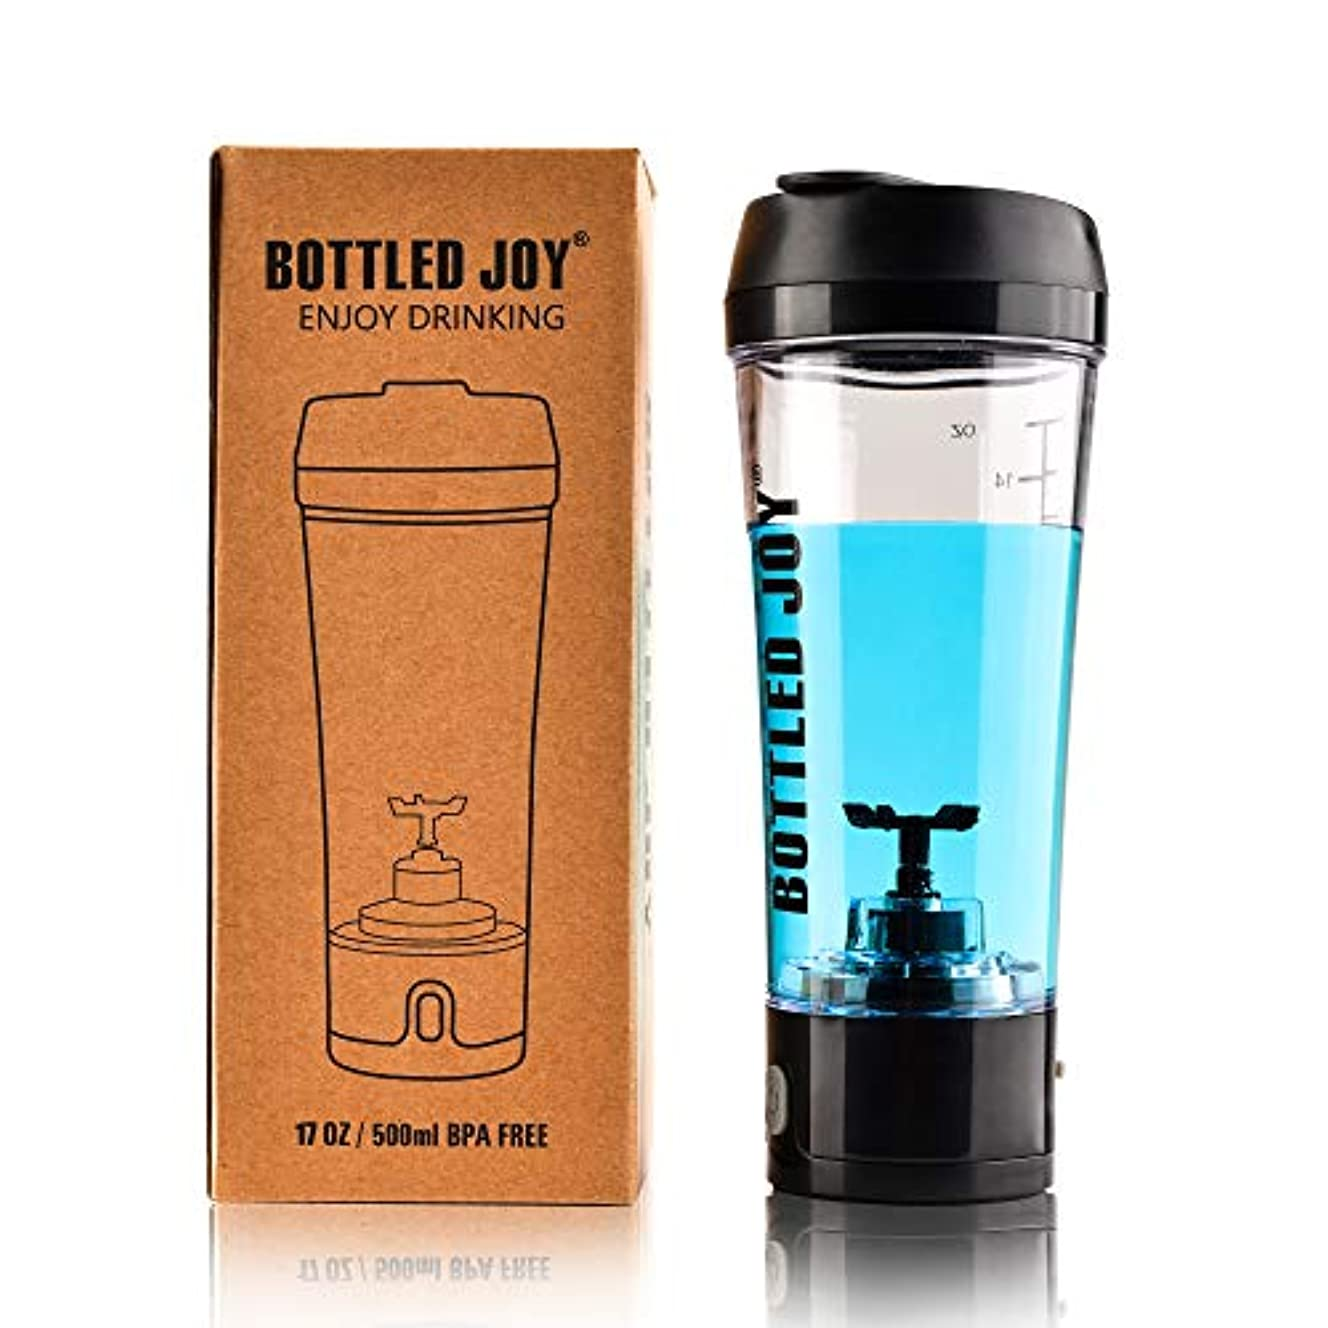 注目すべき迷信スタウトBottled Joy Electric Shaker Bottle、USB Rechargeable Protein Shaker、high-torque Stirring Blenderミキサーのスポーツマンと女性16oz...